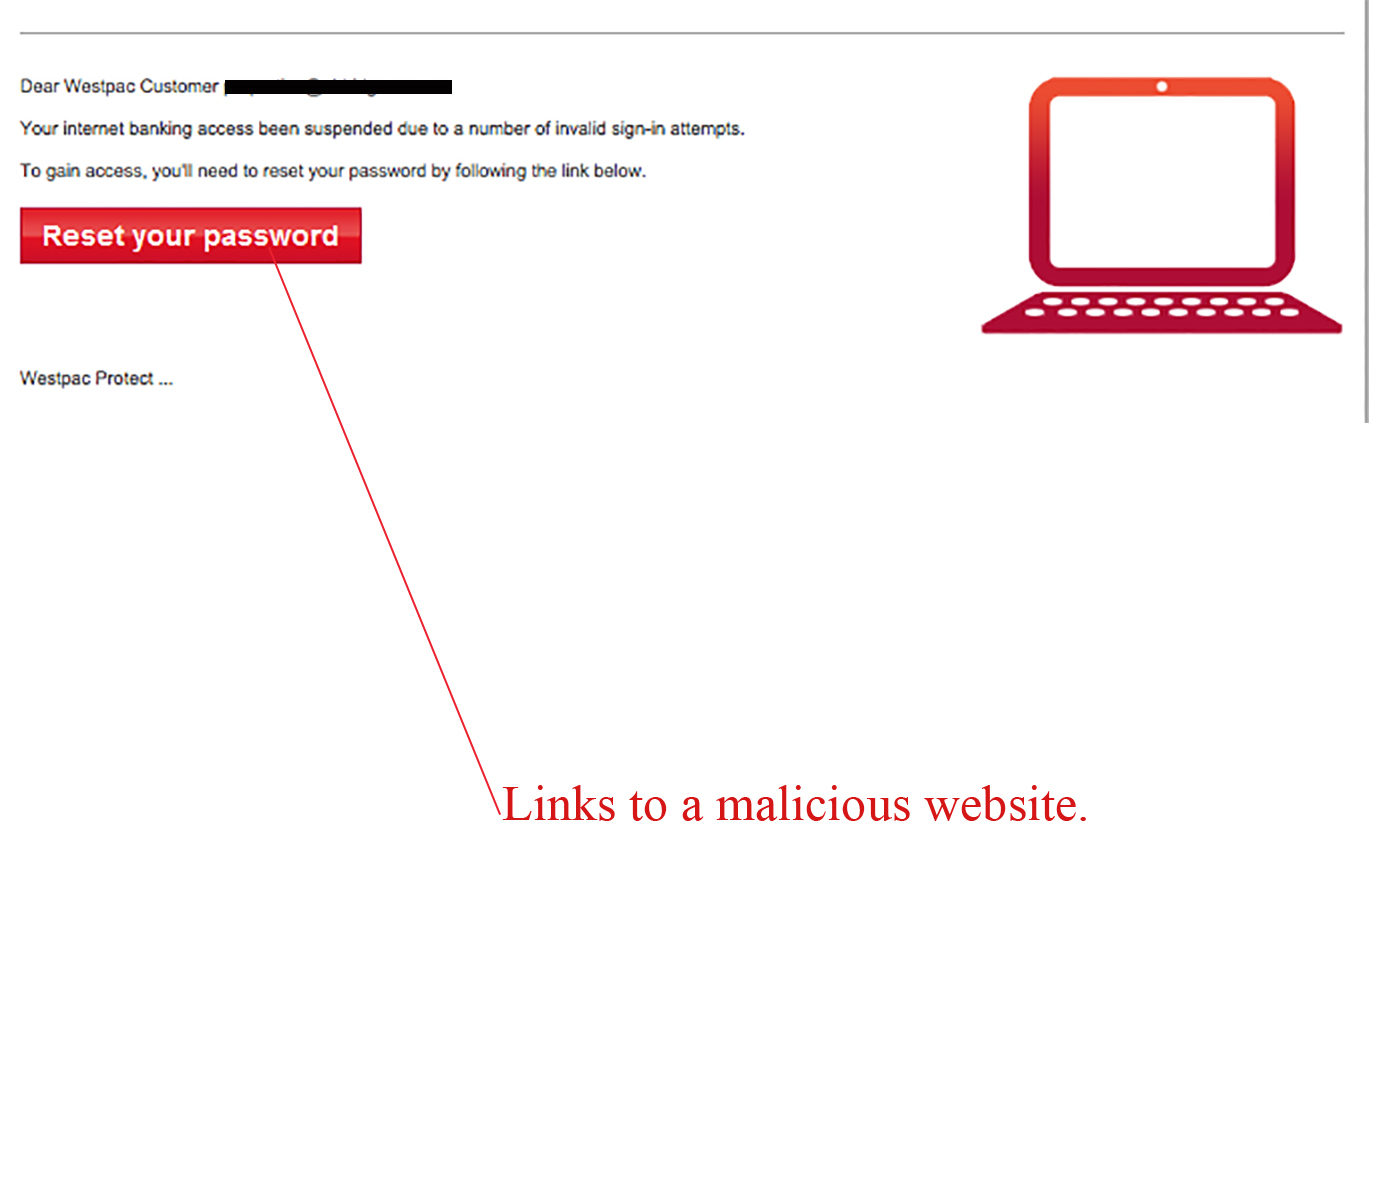 MailShark Westpac Password Reset Phishing Scam